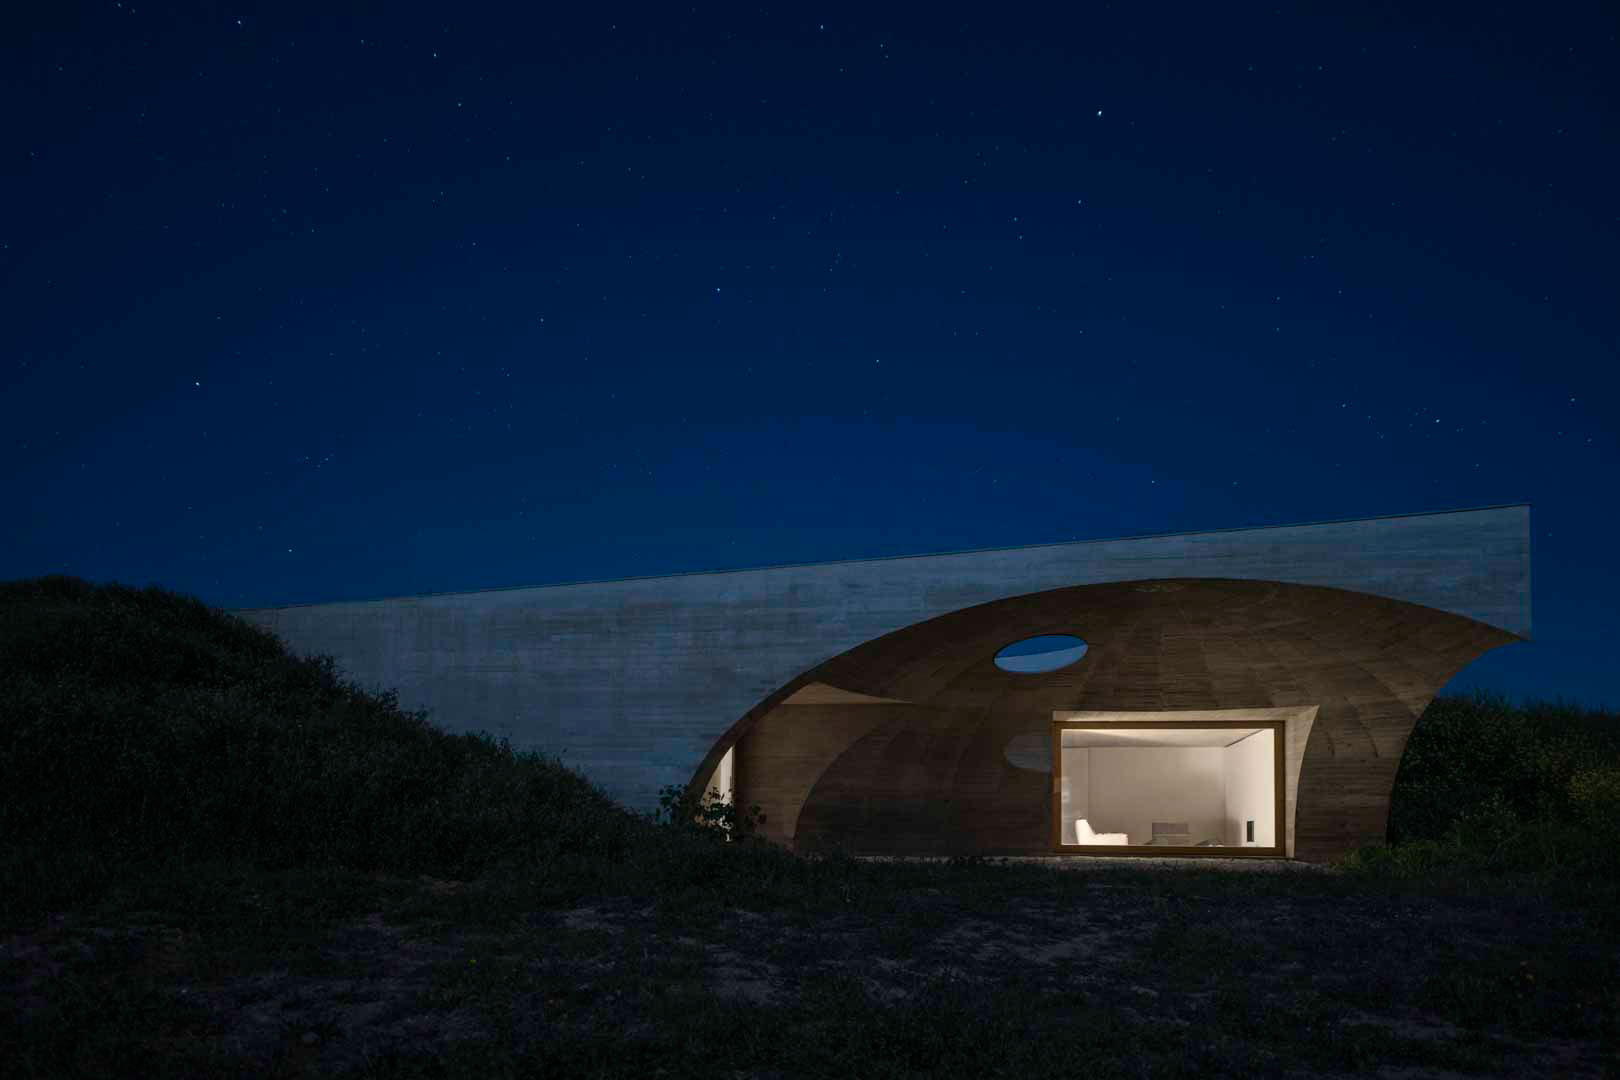 House in Monsaraz by Aires Mateus Architects. Photo by Joao Guimaraes.